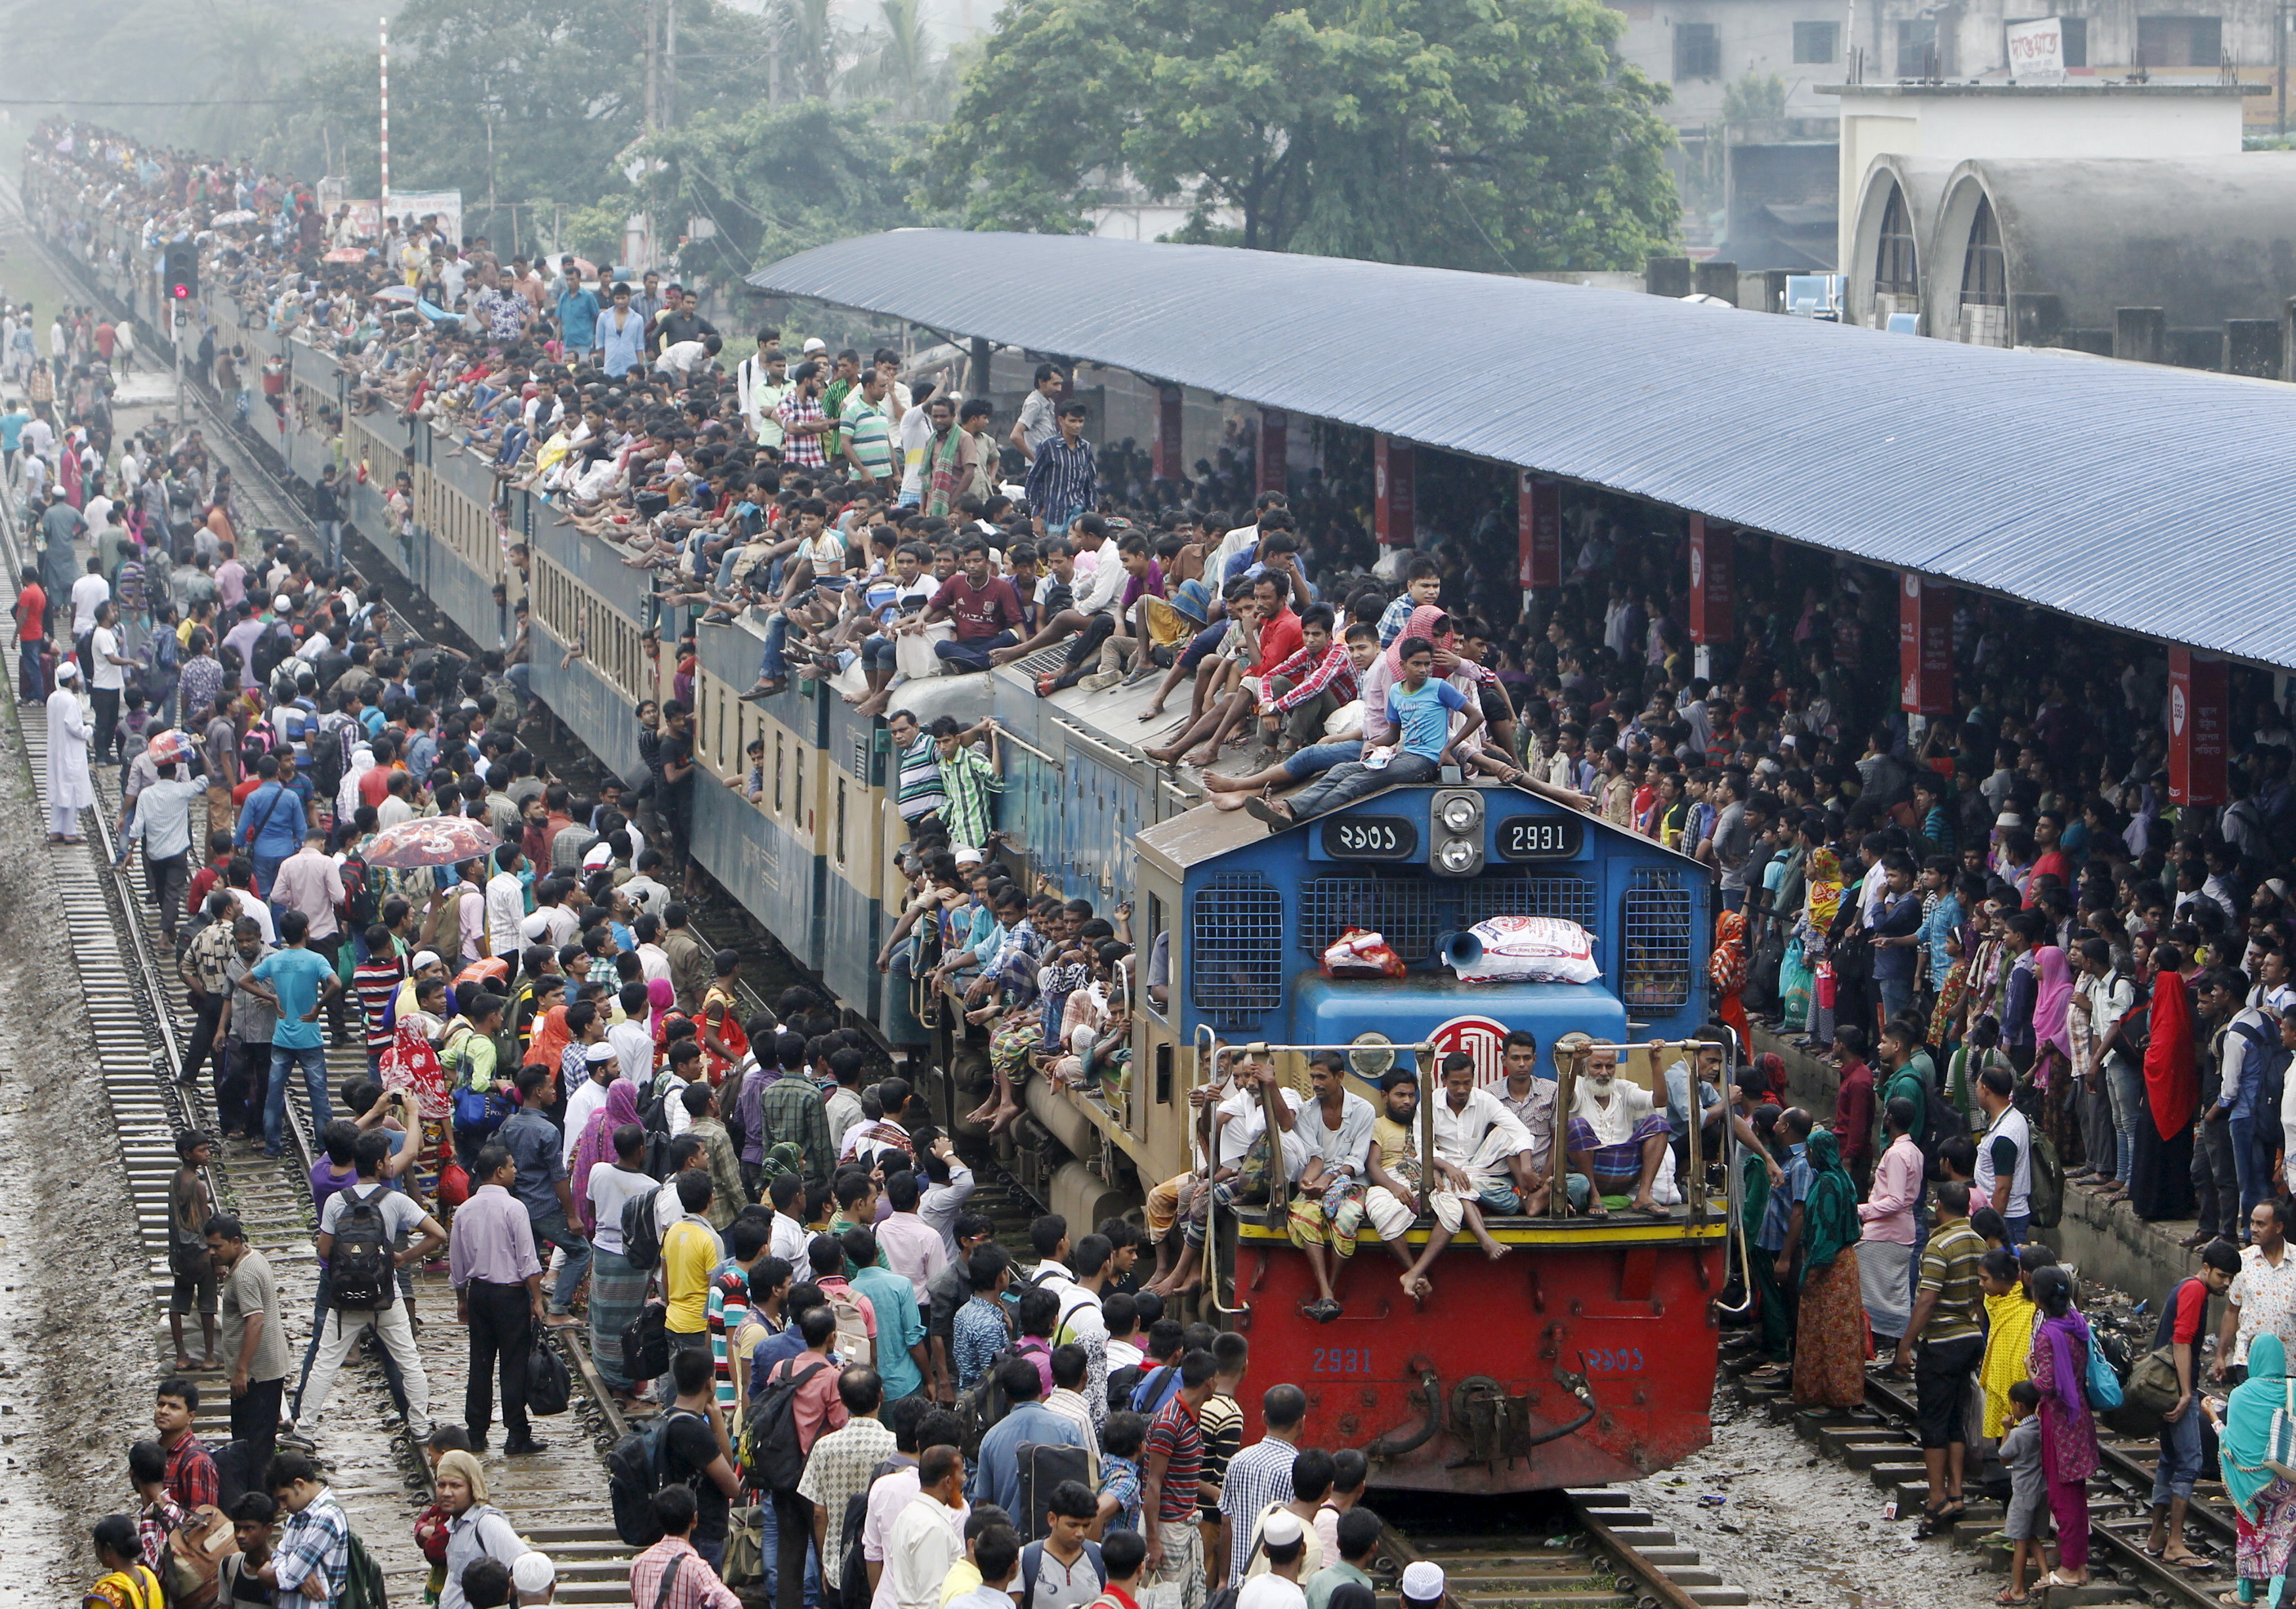 People crowd on top of a train entering the Dhaka airport rail station September 24, 2015, as thousands of Bangladeshi Muslims head home to celebrate Eid-al-Adha. Muslims across the world are celebrating the annual festival of Eid al-Adha also known as the Feast of the Sacrifice. REUTERS/Ashikur Rahman      TPX IMAGES OF THE DAY      - GF10000218305